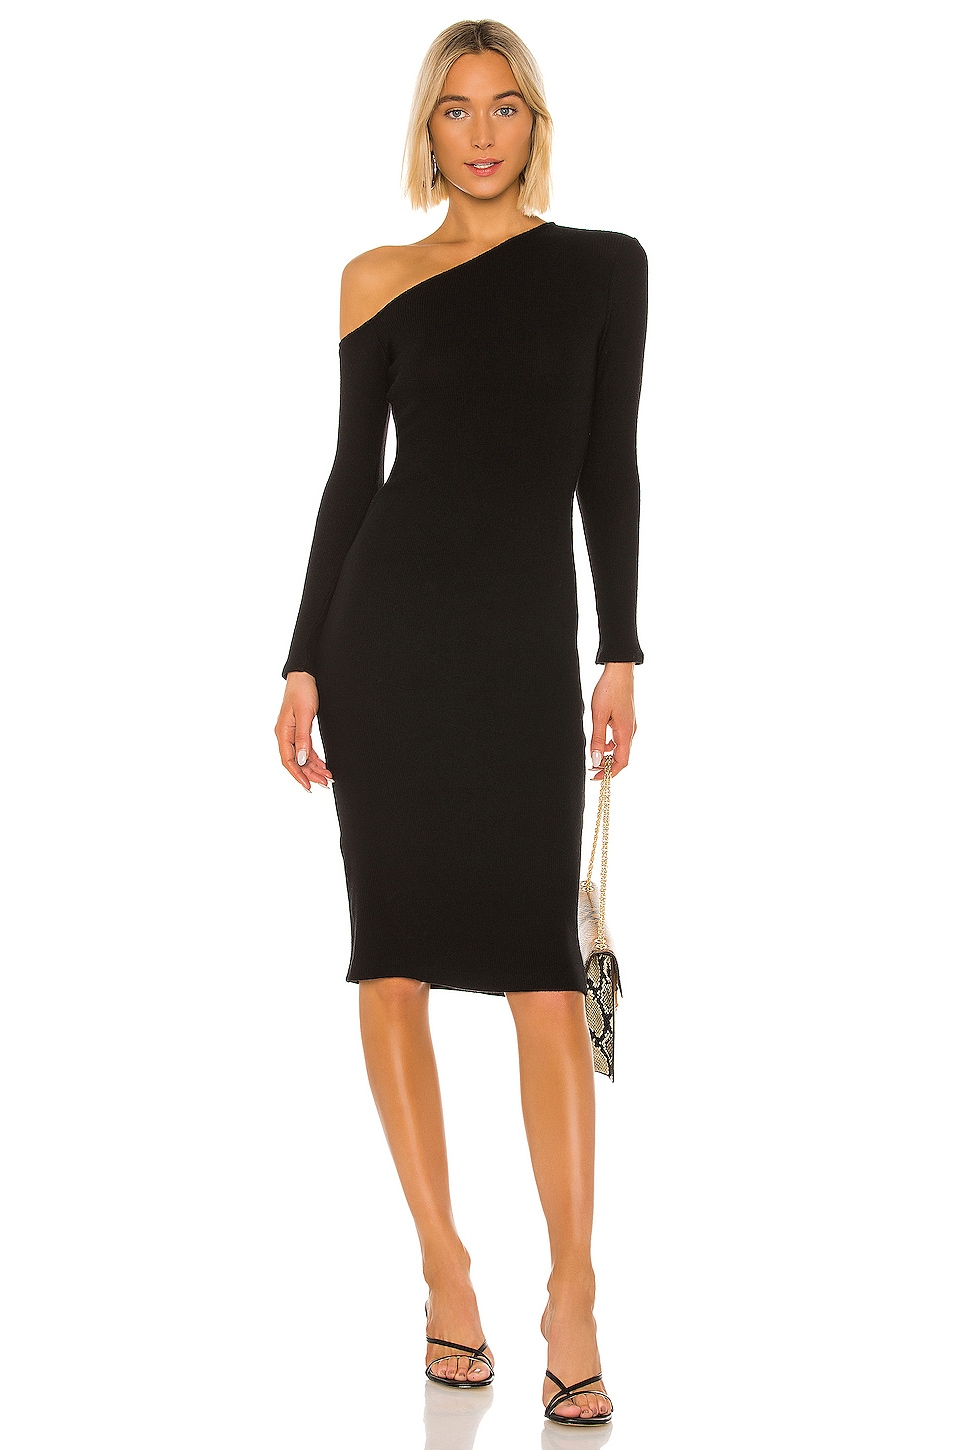 Sweater Knit Angled Midi Dress             Enza Costa                                                                                                       CA$ 297.84 6